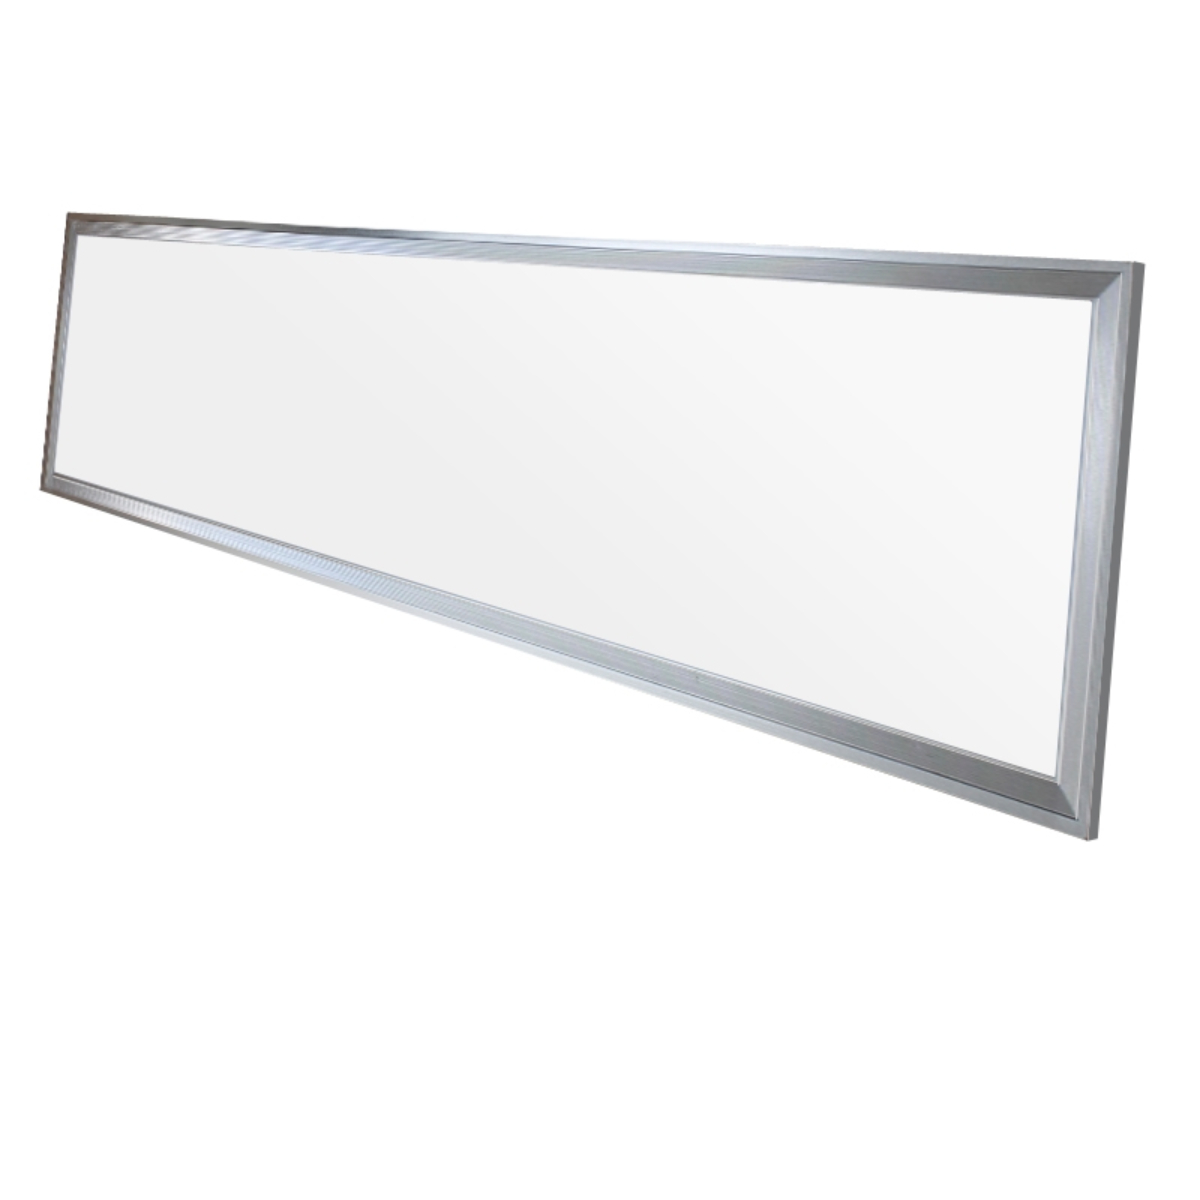 120x30cm led panel wandleuchte leuchte einbau decken lampe ultraslim 42 watt ebay. Black Bedroom Furniture Sets. Home Design Ideas